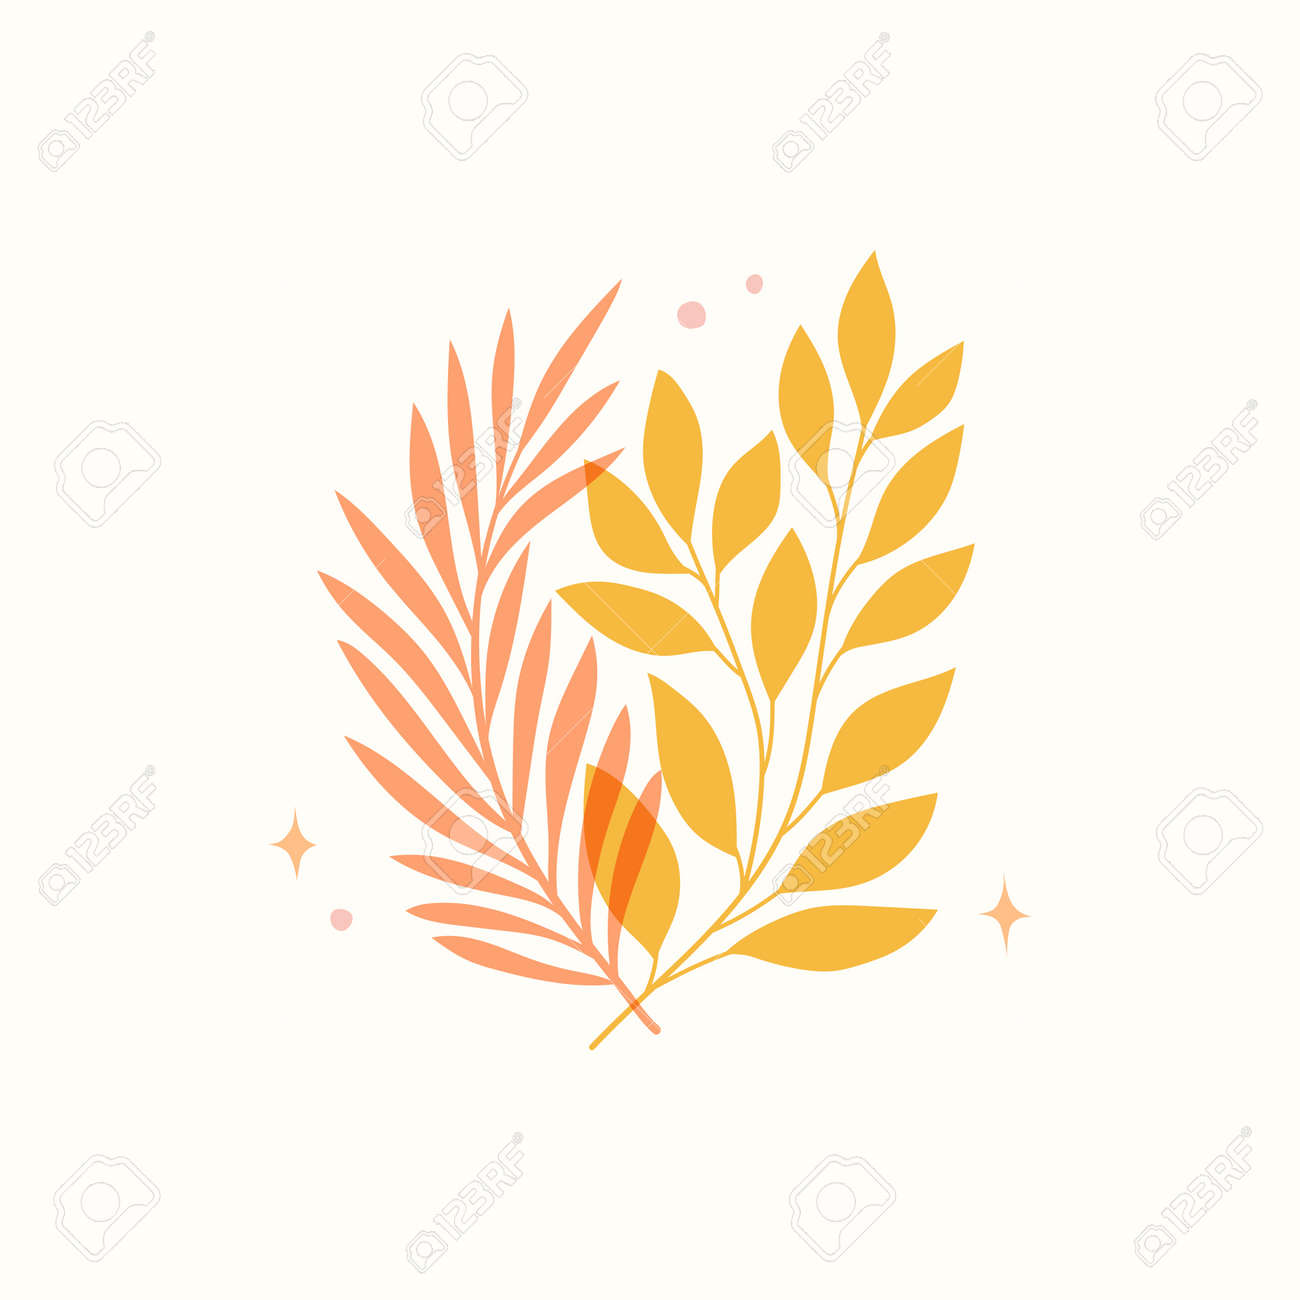 Vector modern floral arrangement background. Cute delicate botanical illustration with leaves and plants. - 168265270